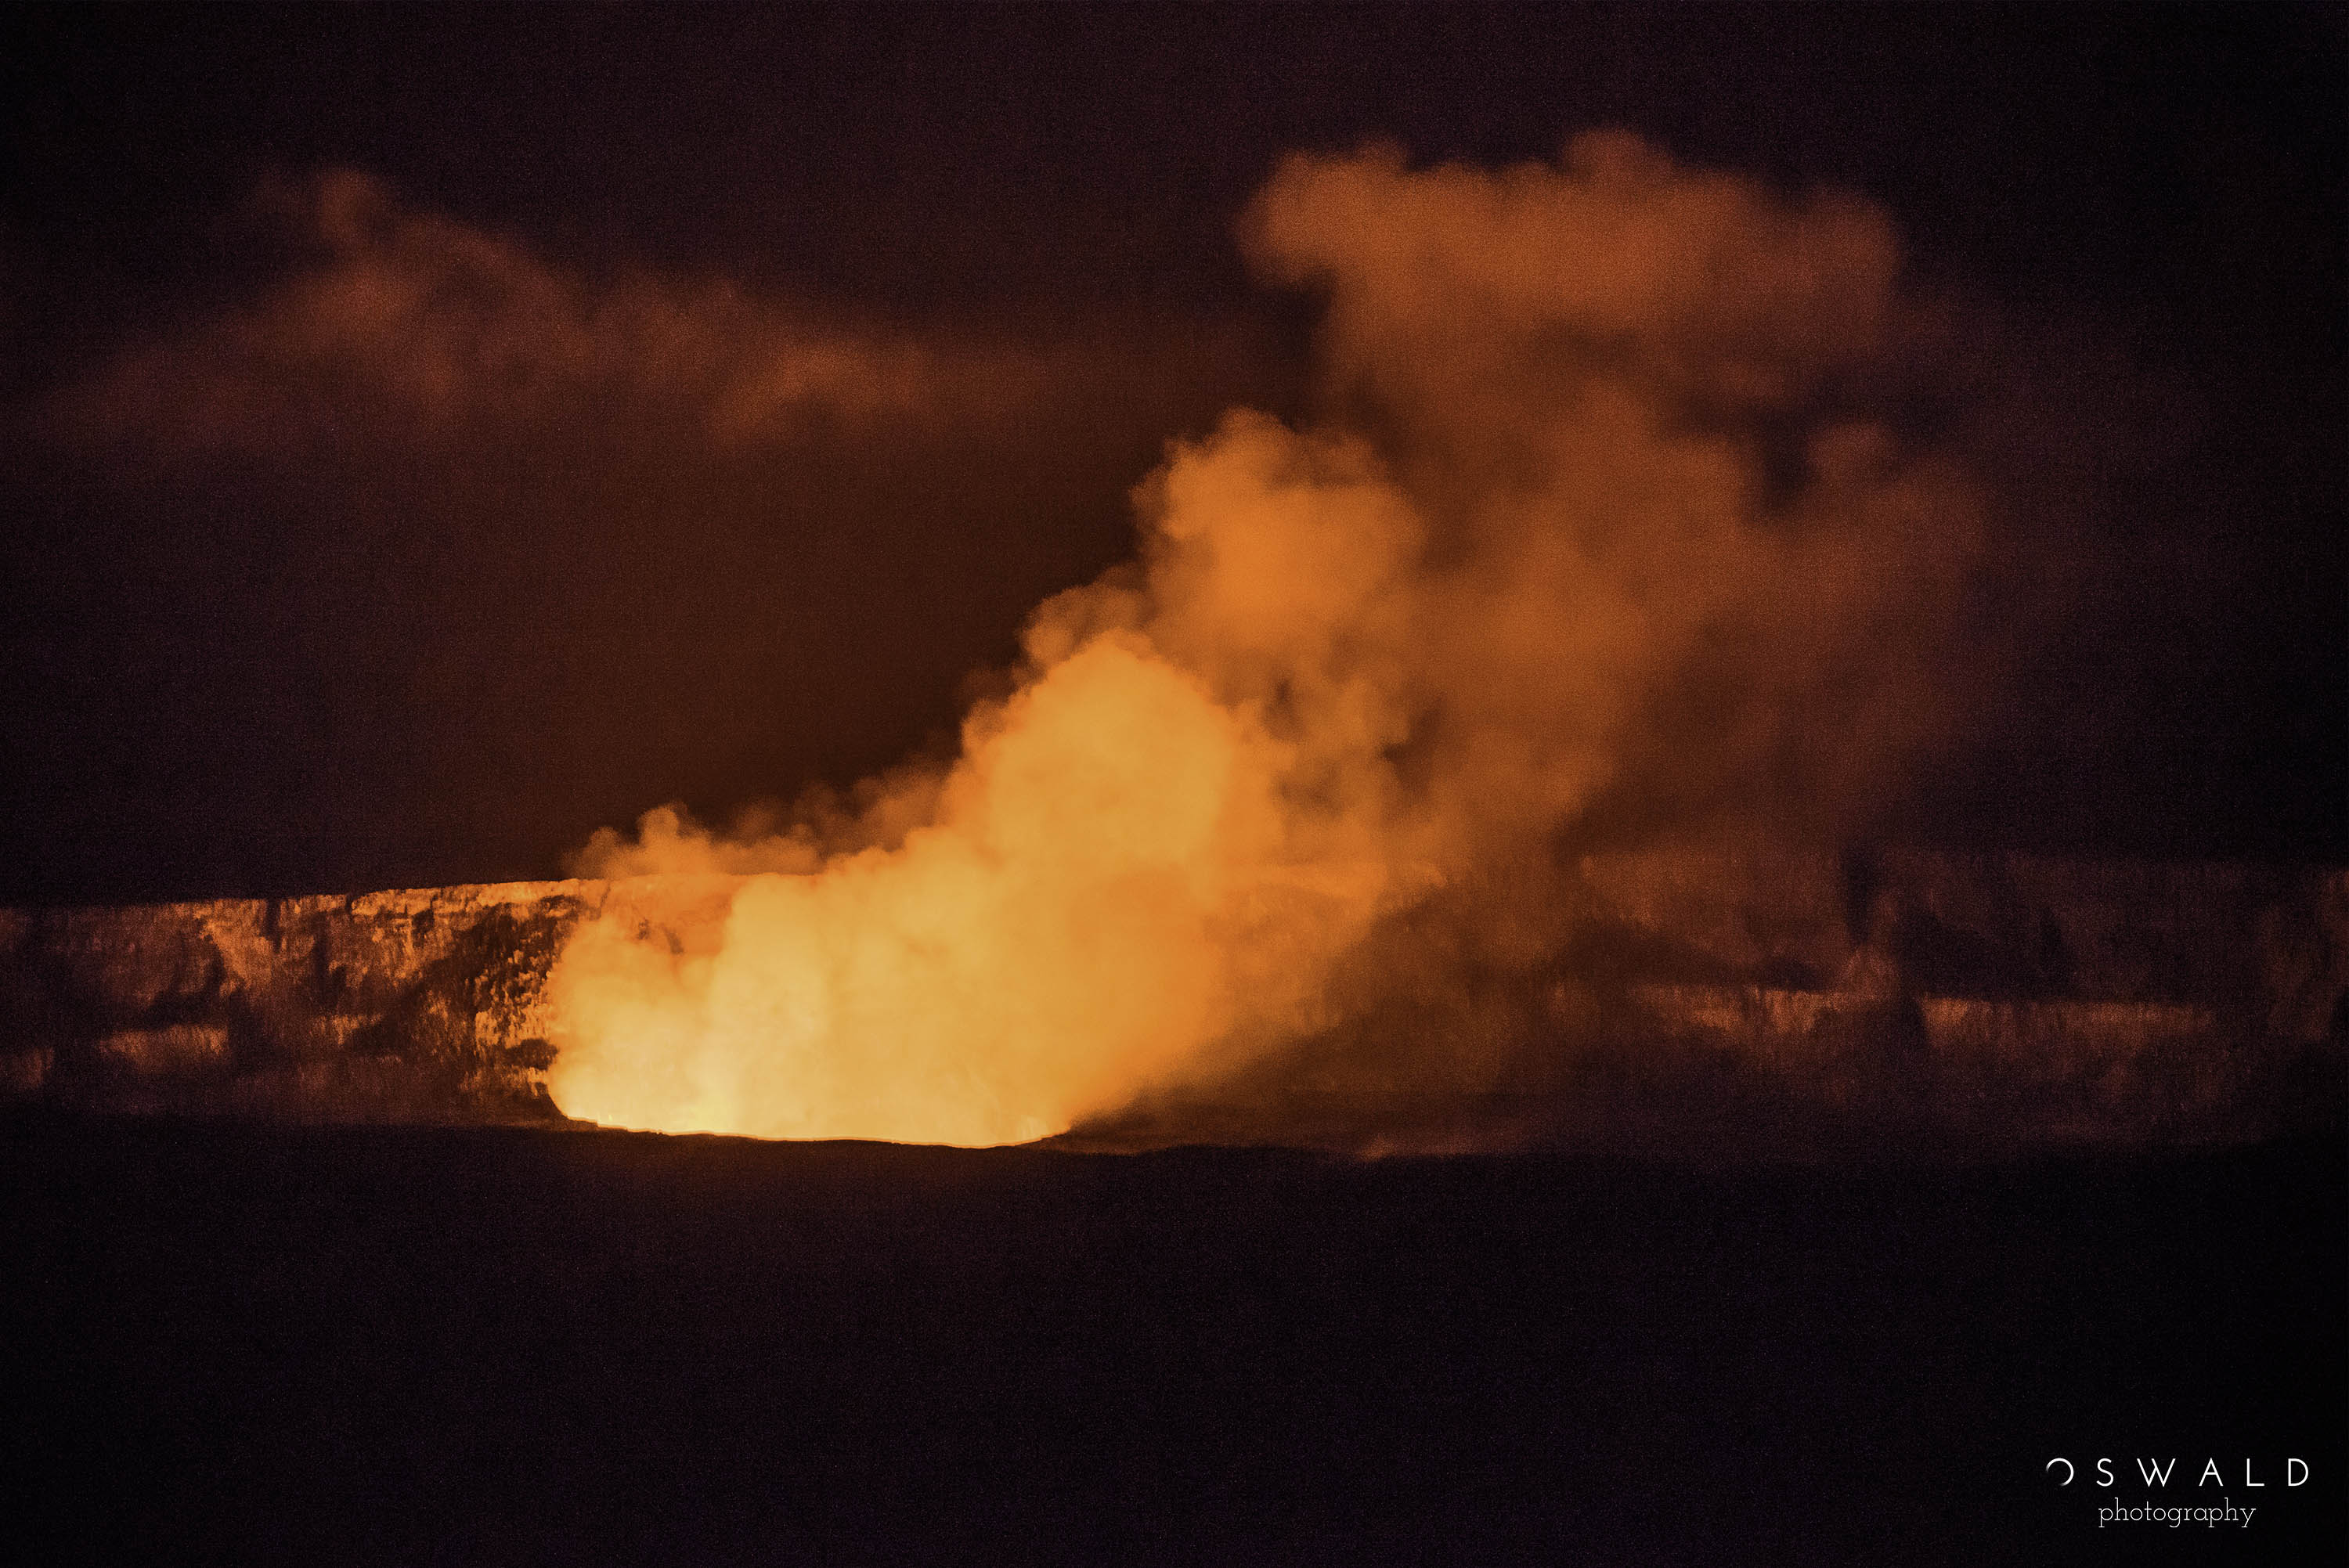 A nighttime photograph of the Kilauea Caldera from the Jaggar Museum at Hawaii Volcanoes National Park.